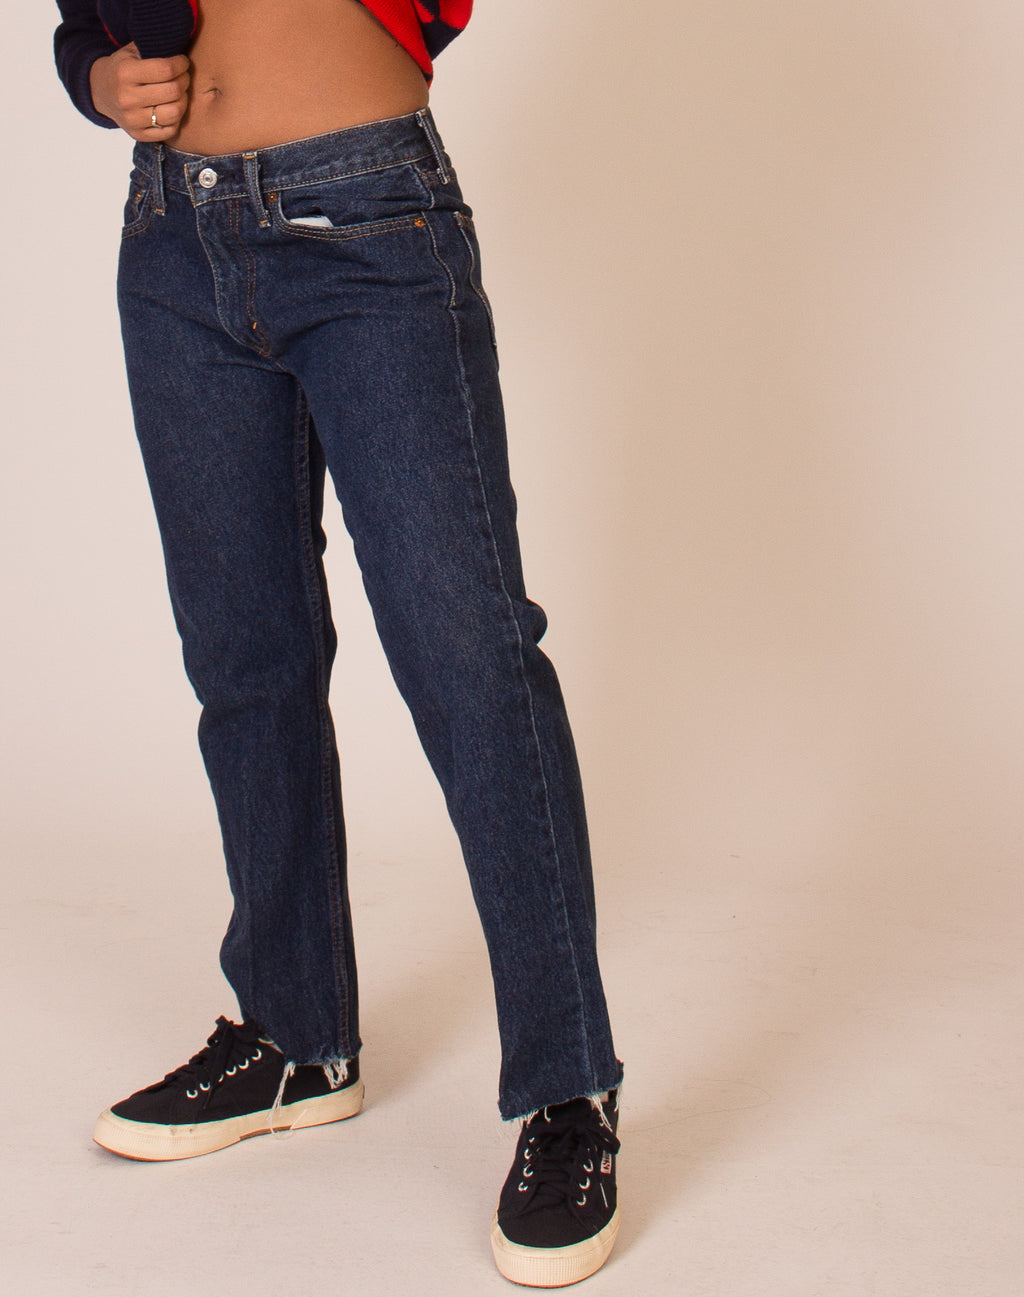 LEVI'S LOW RISE FRAYED JEANS